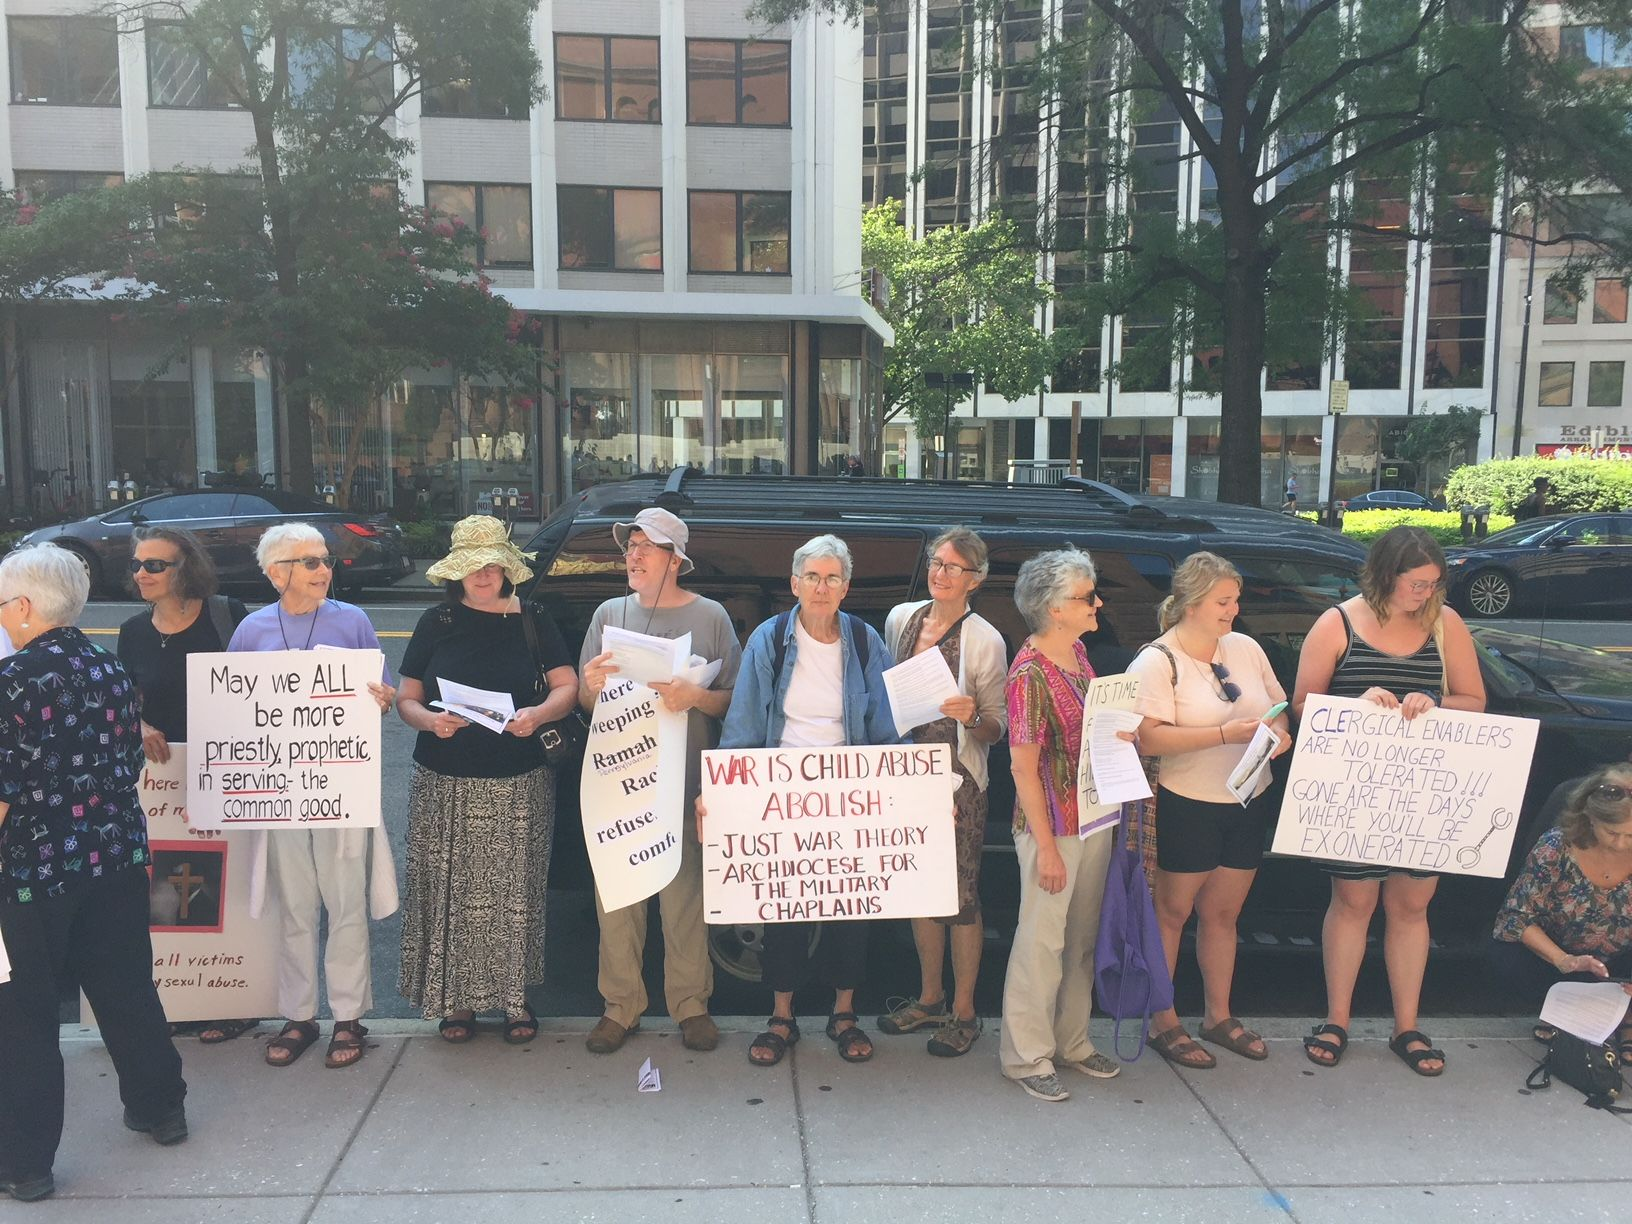 Protesters in DC call for changes in the Catholic church, both locally and broadly.